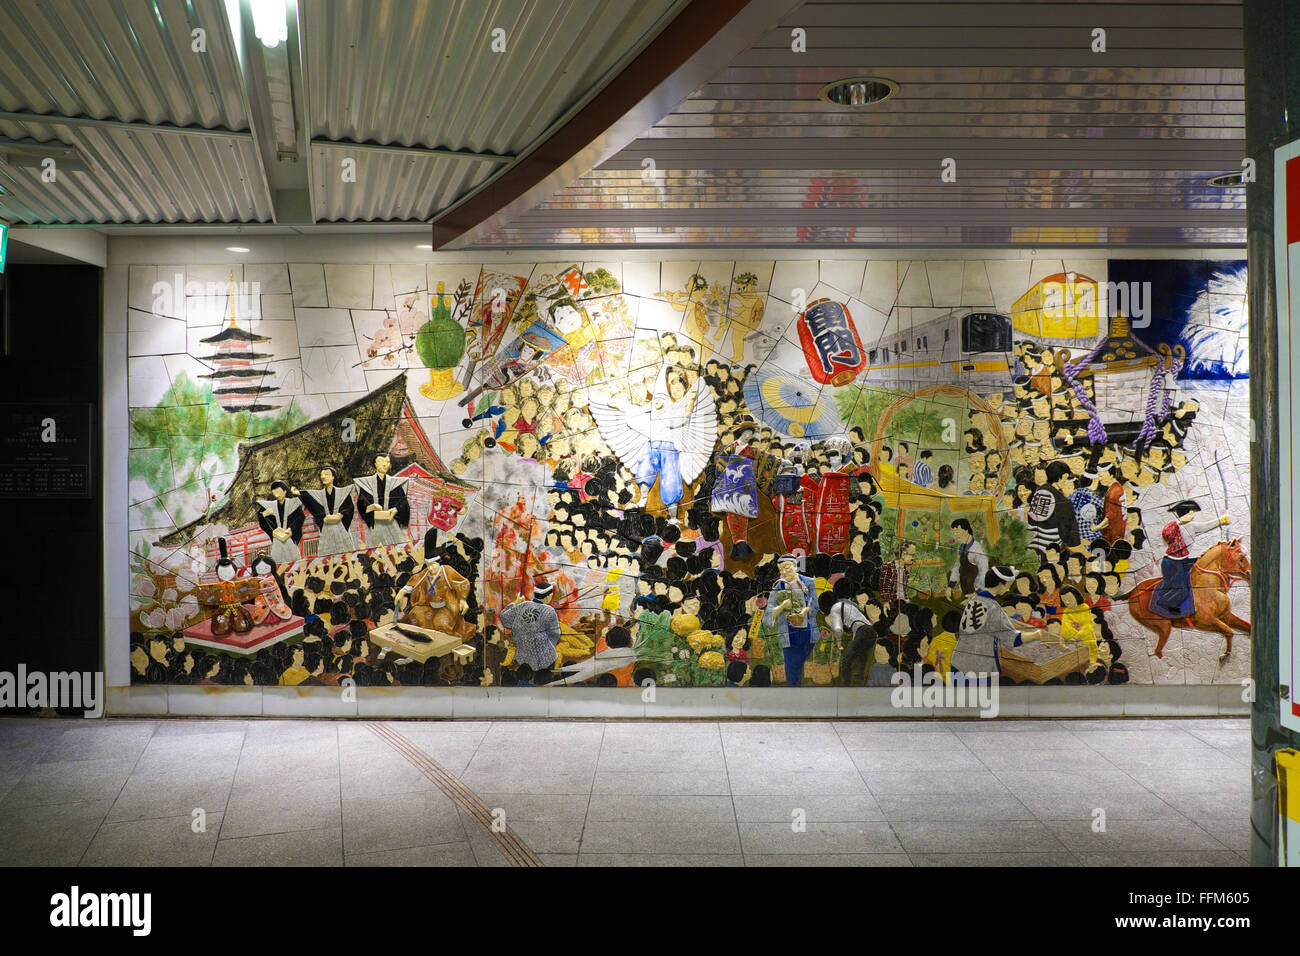 Japan Wall Mural Stock Photos Japan Wall Mural Stock Images Alamy